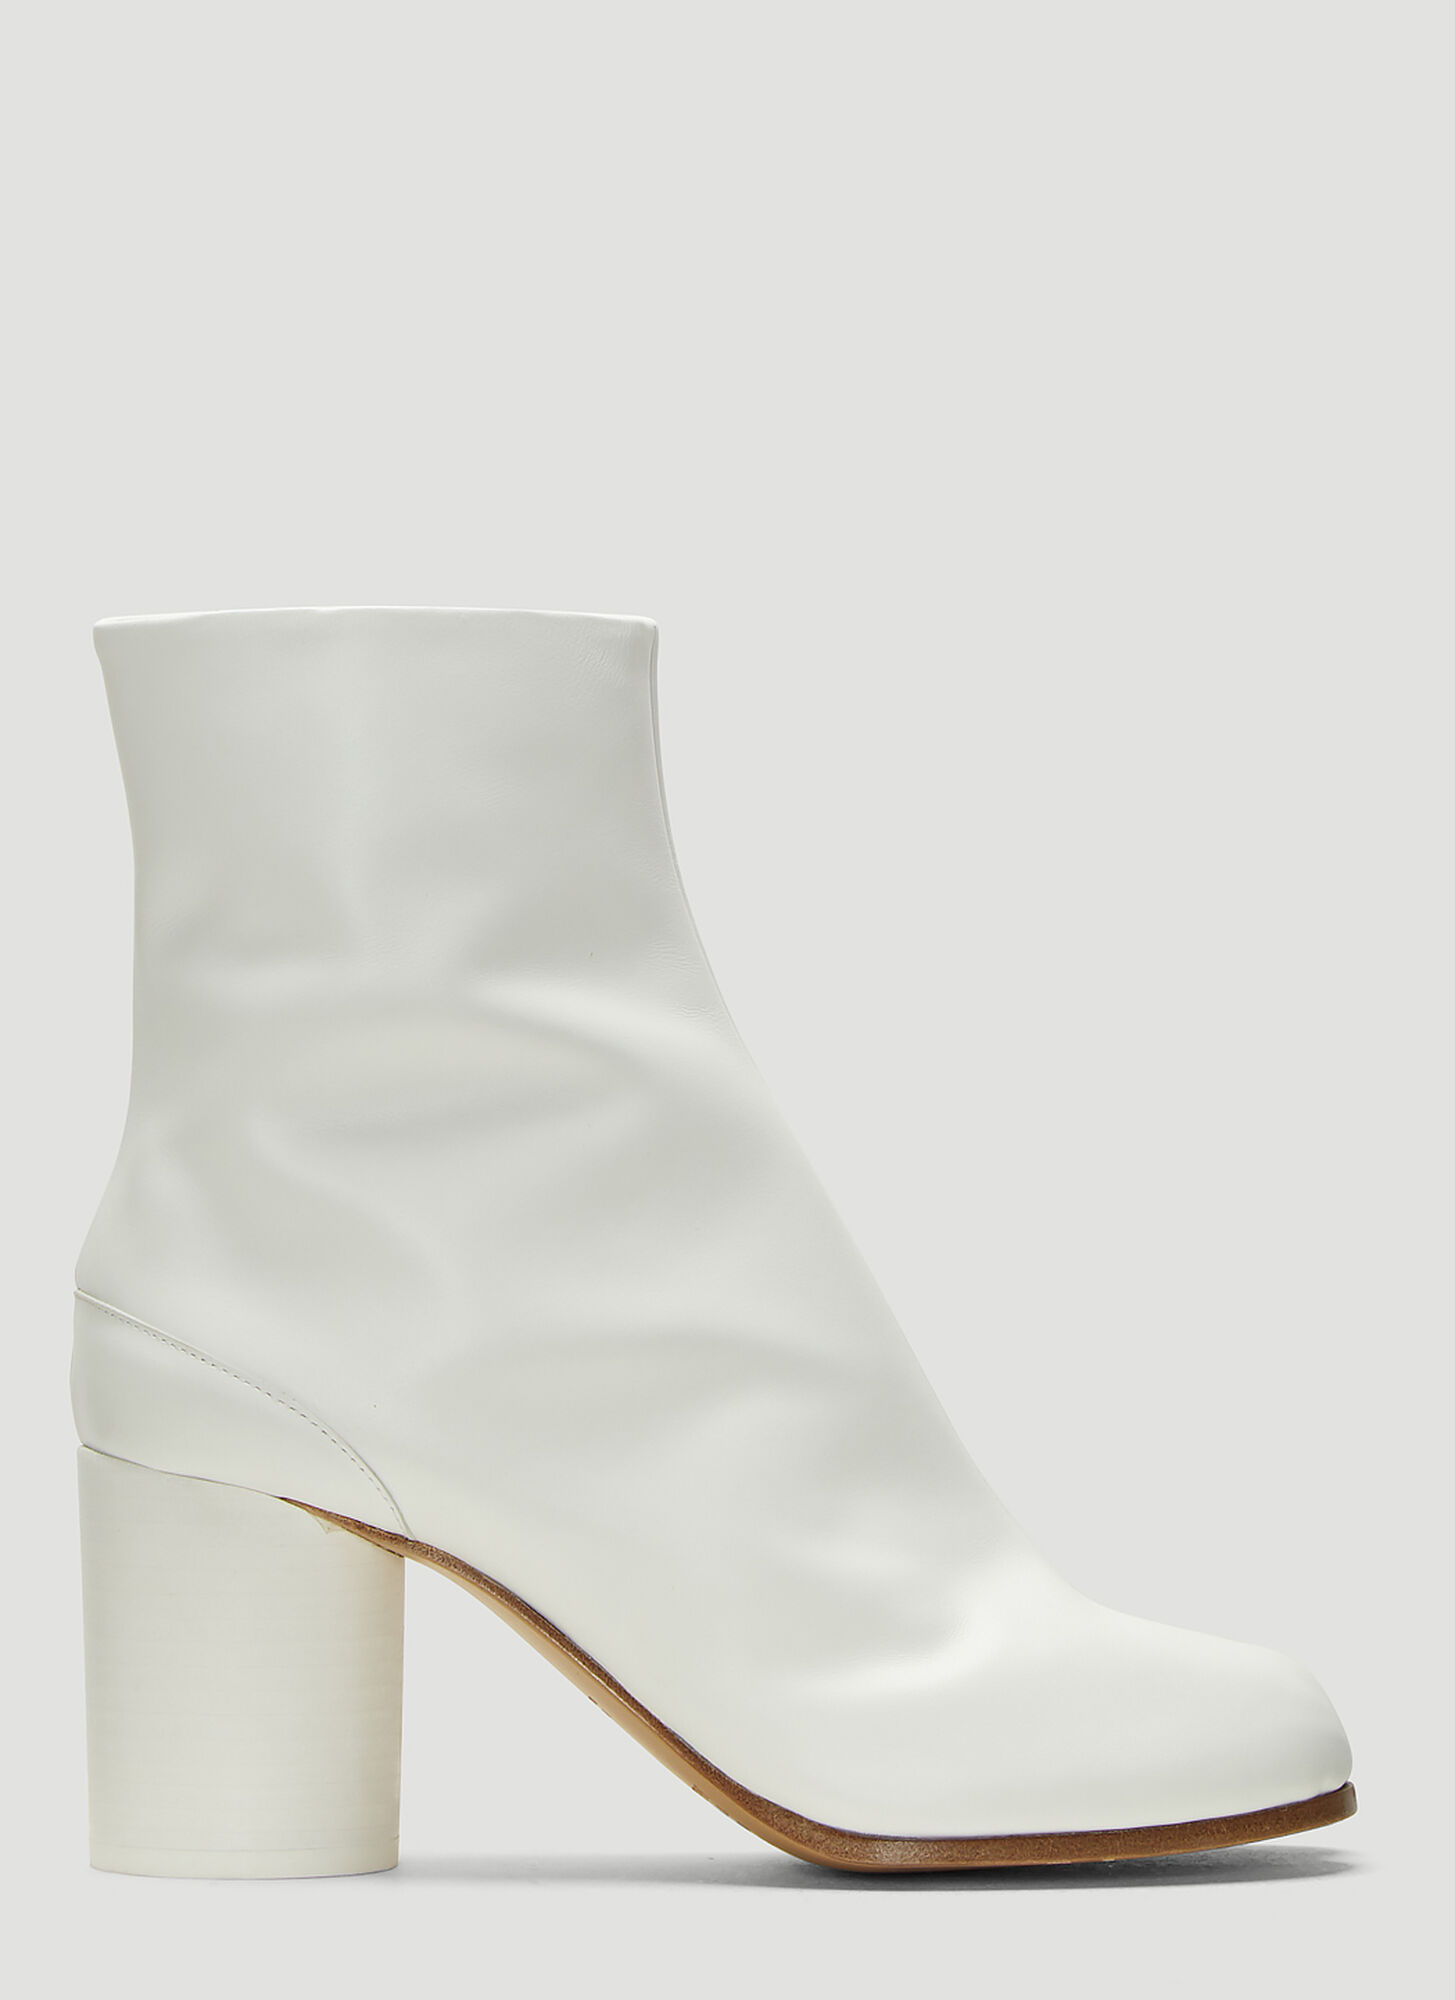 Maison Margiela Tabi Ankle Boots in White